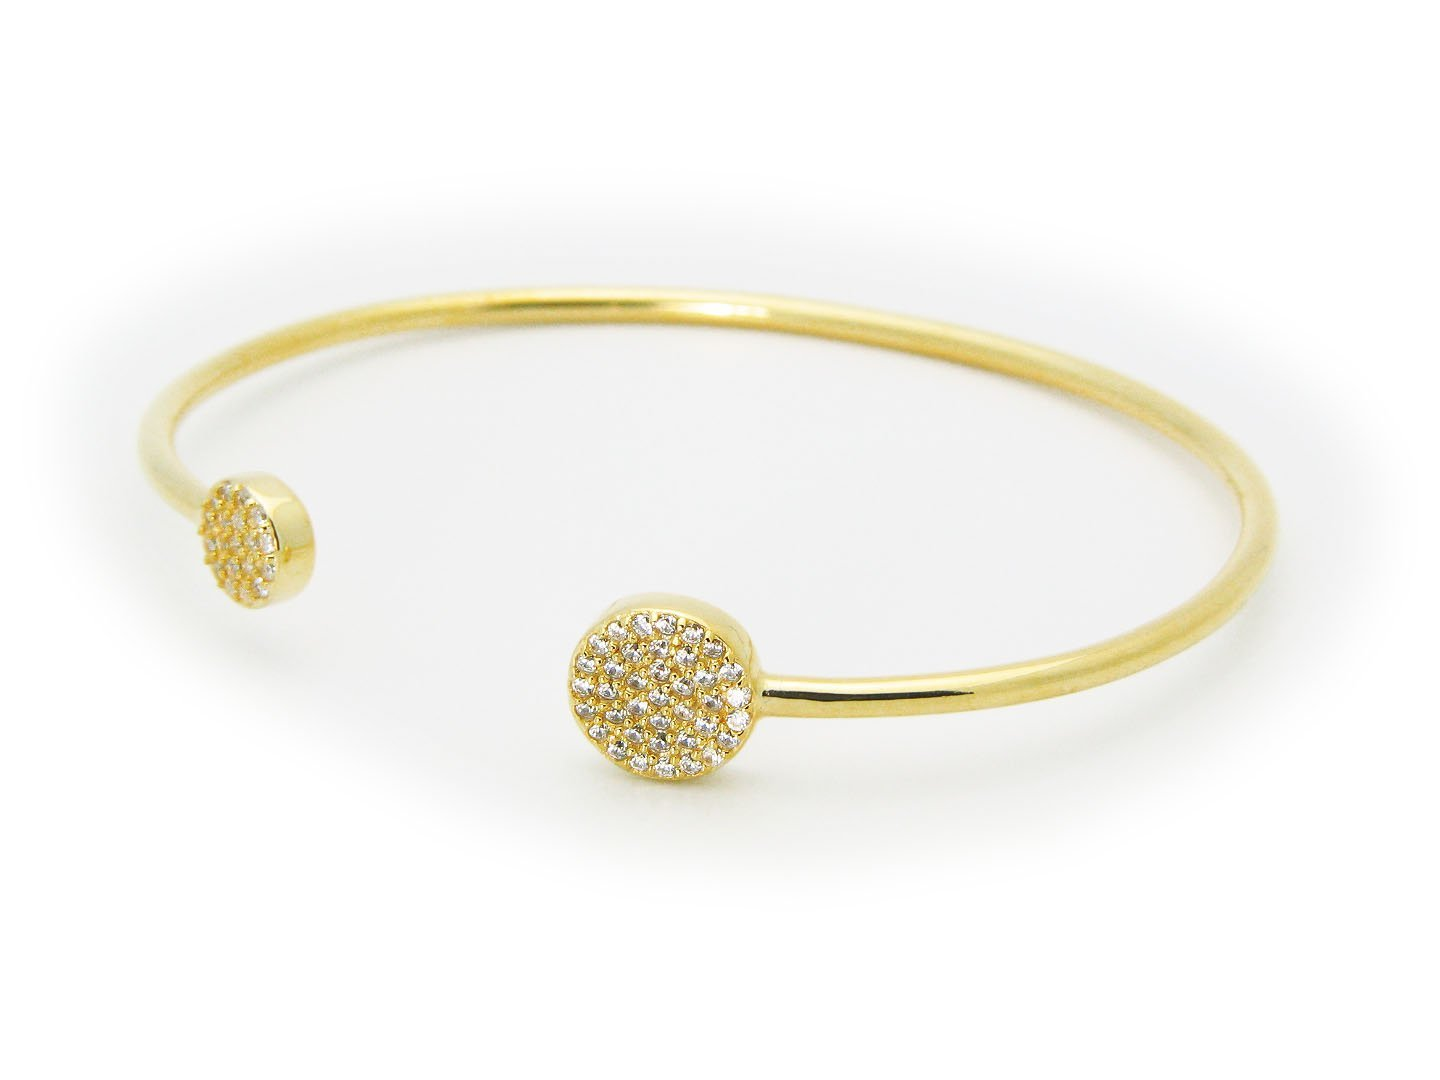 18K Gold Plated Sterling Silver Studded Disks Cuff Bangle